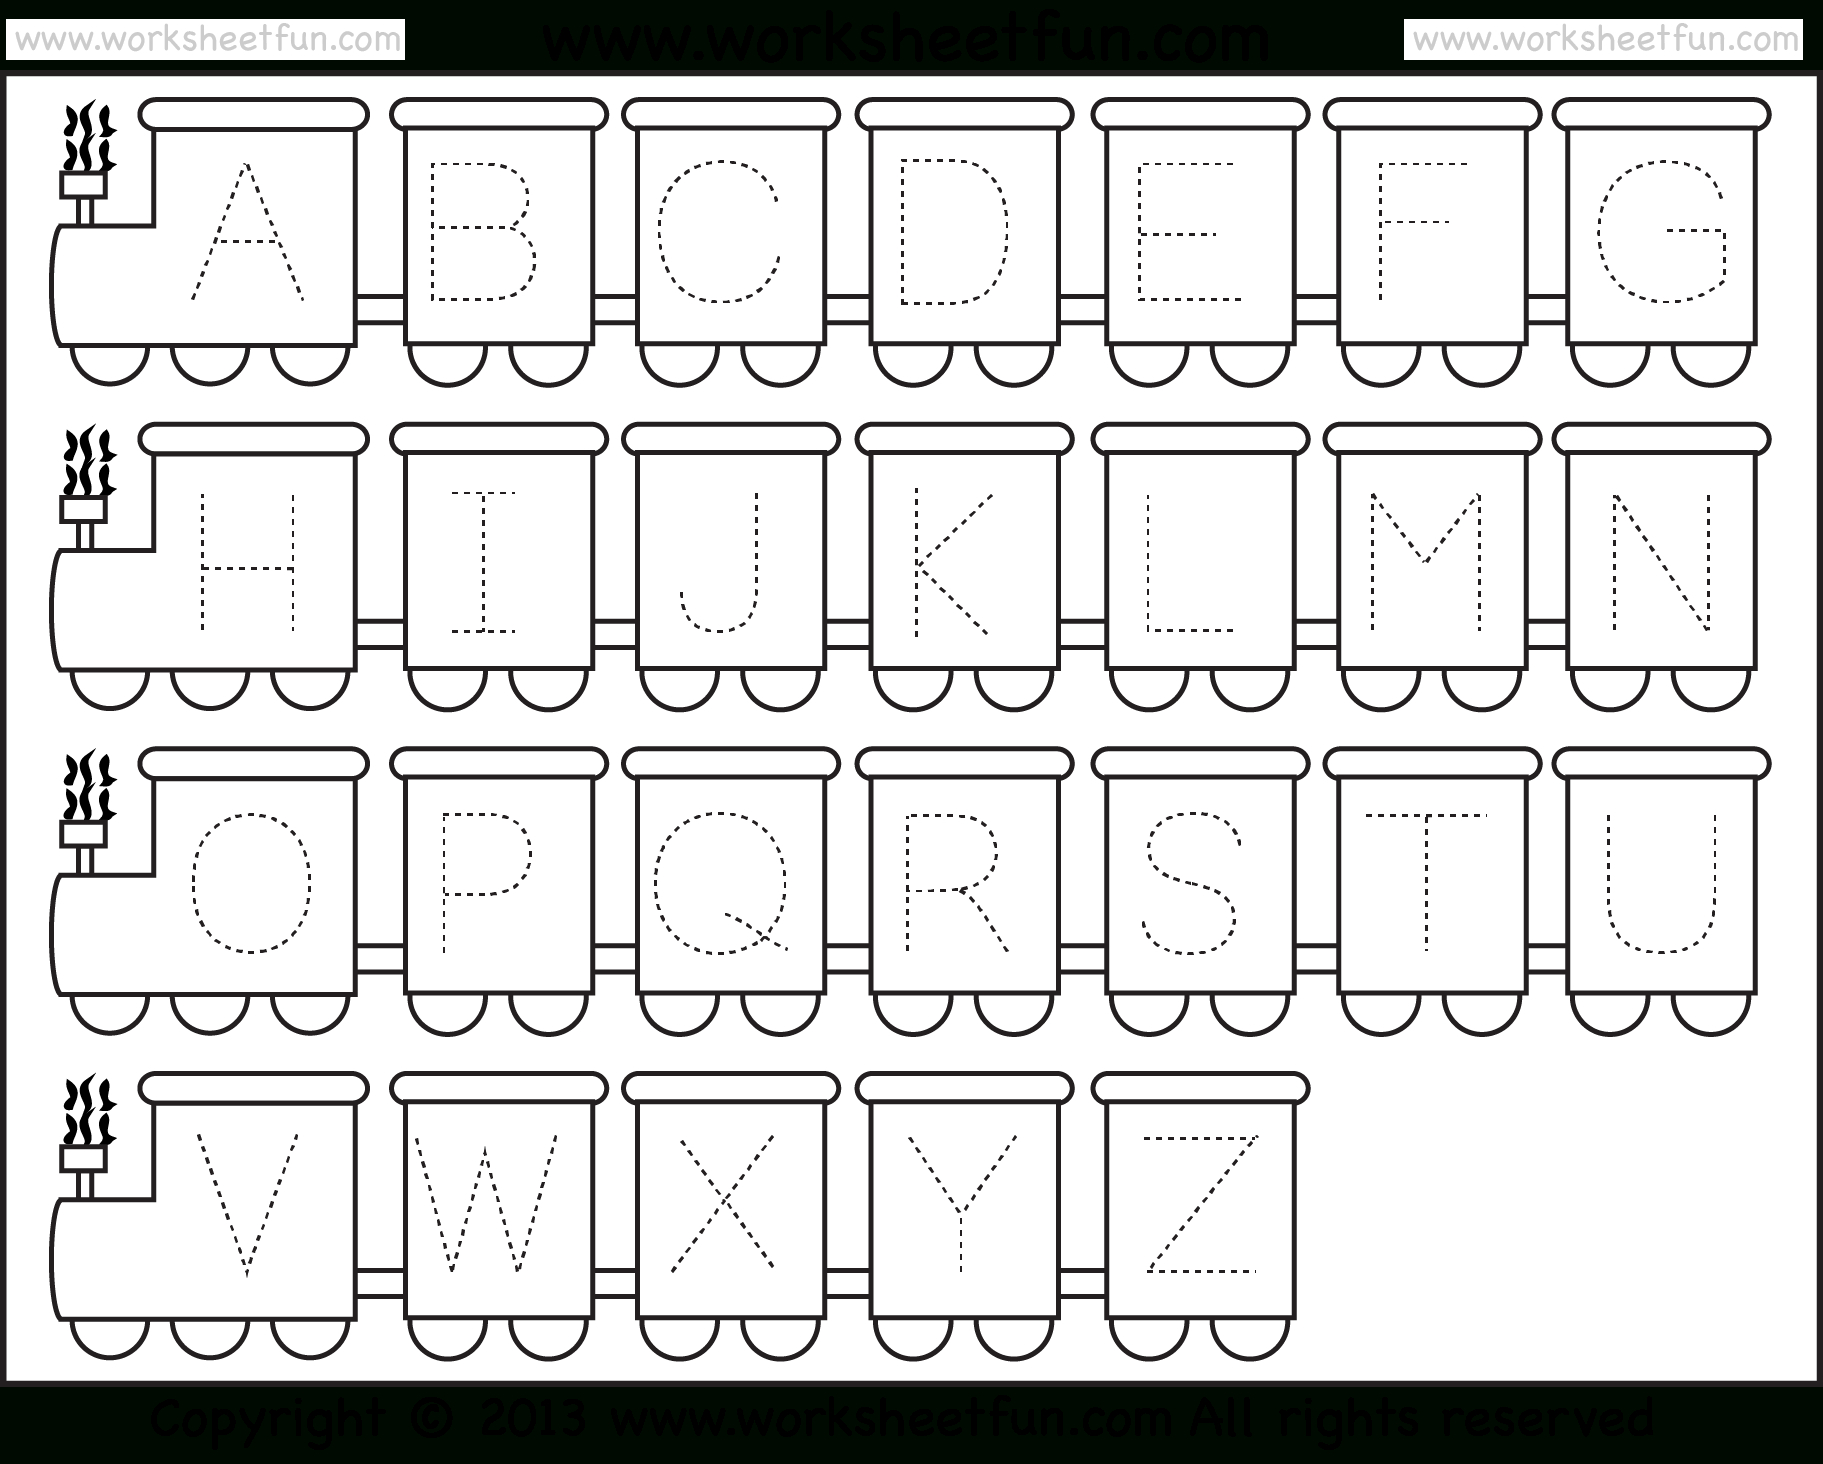 Letter Tracing Worksheet – Train Theme / Free Printable Worksheets - Free Printable Tracing Alphabet Worksheets